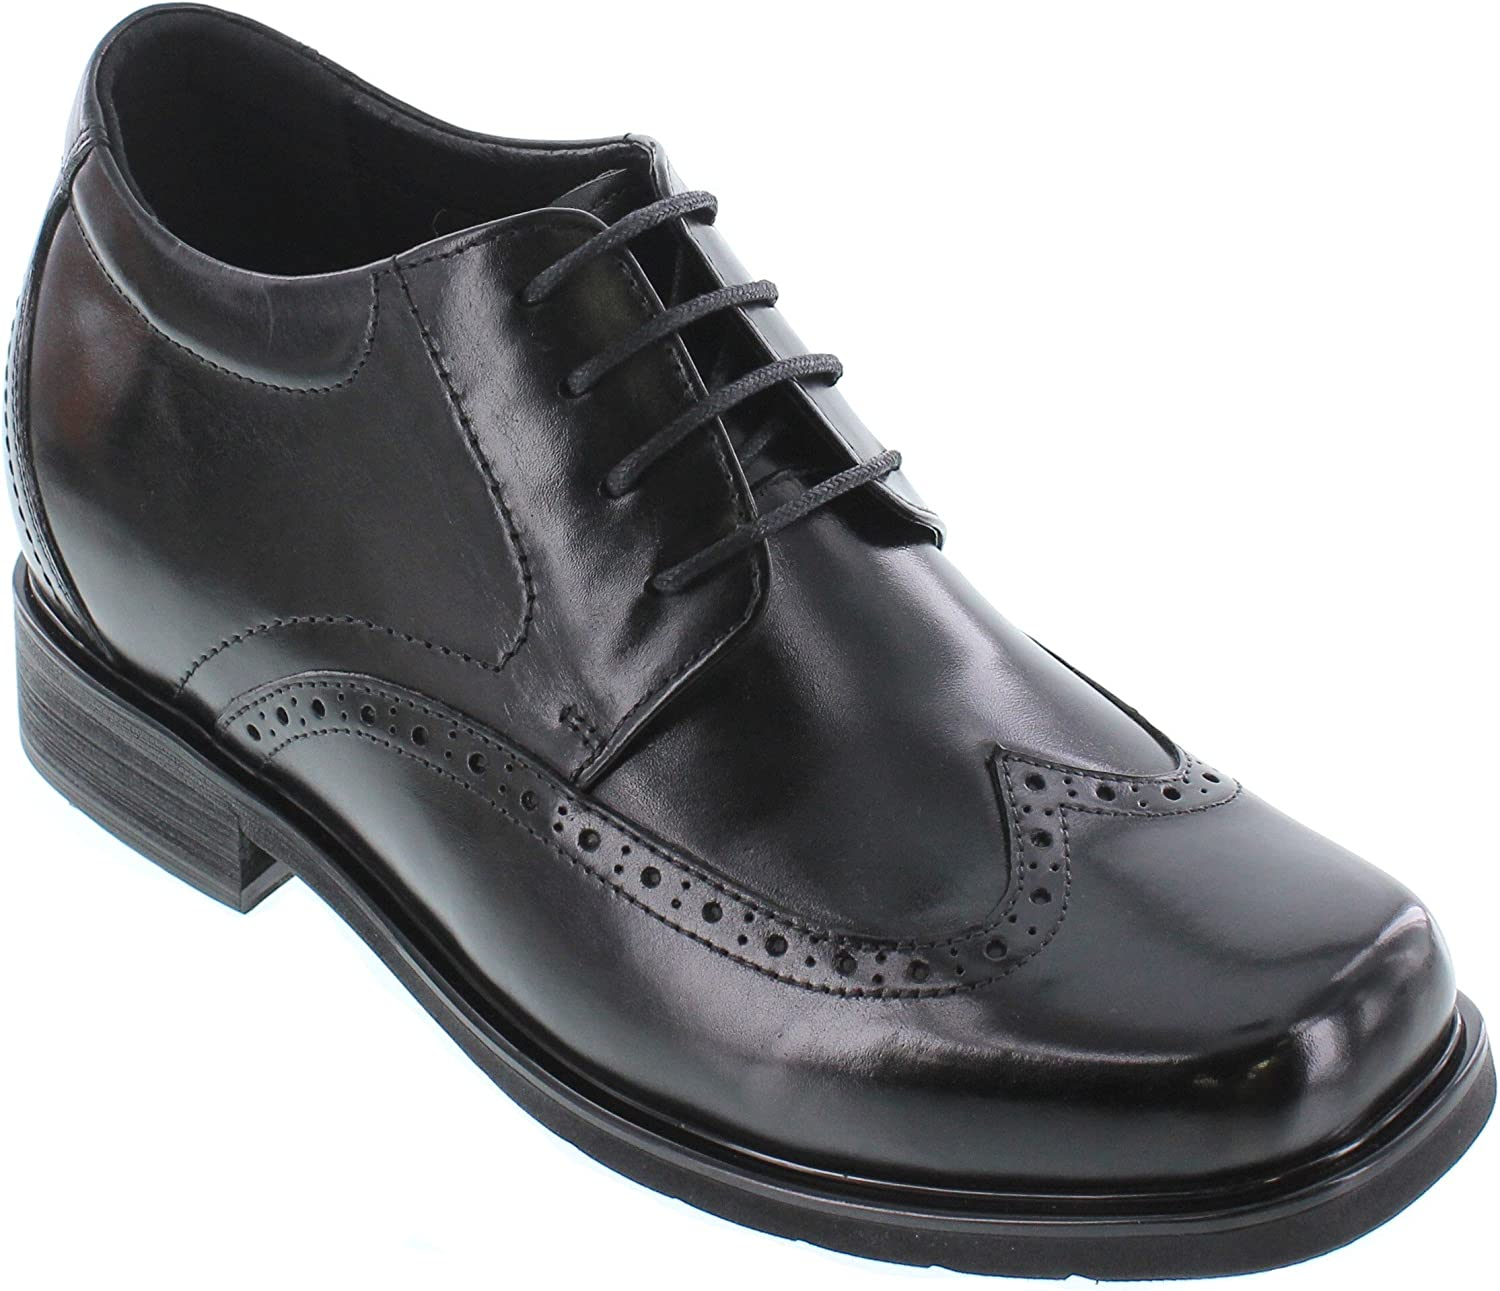 CALTO Men's Invisible Height Increasing Elevator Shoes - Black Leather Lace-up Wing-tip Square-Toe Formal Oxfords - 3 Inches Taller - T52711